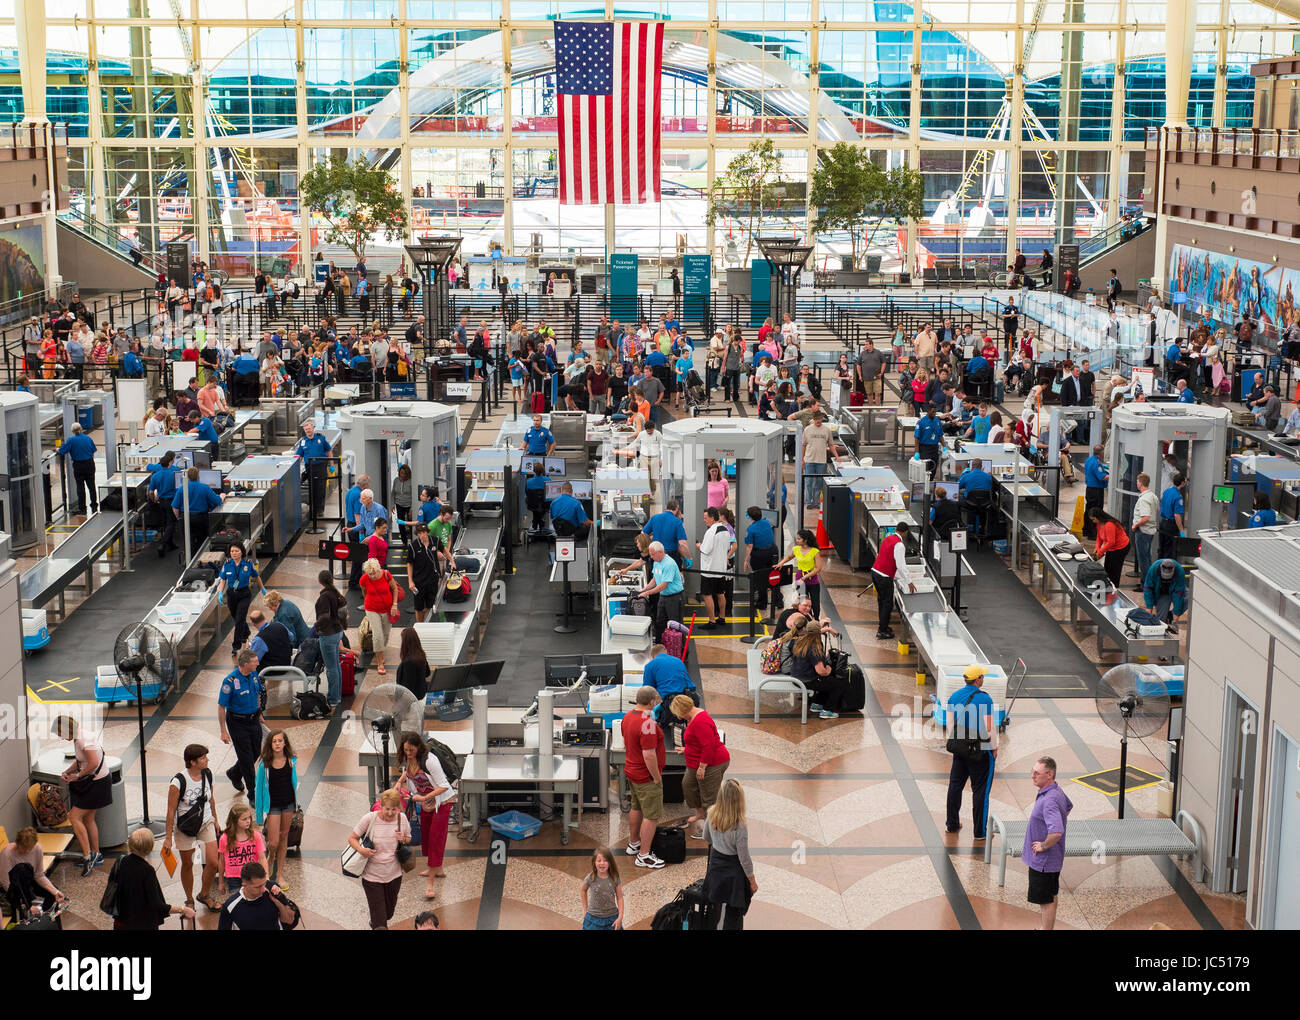 Busy TSA security checkpoint at Denver, Colorado International Airport. Stock Photo